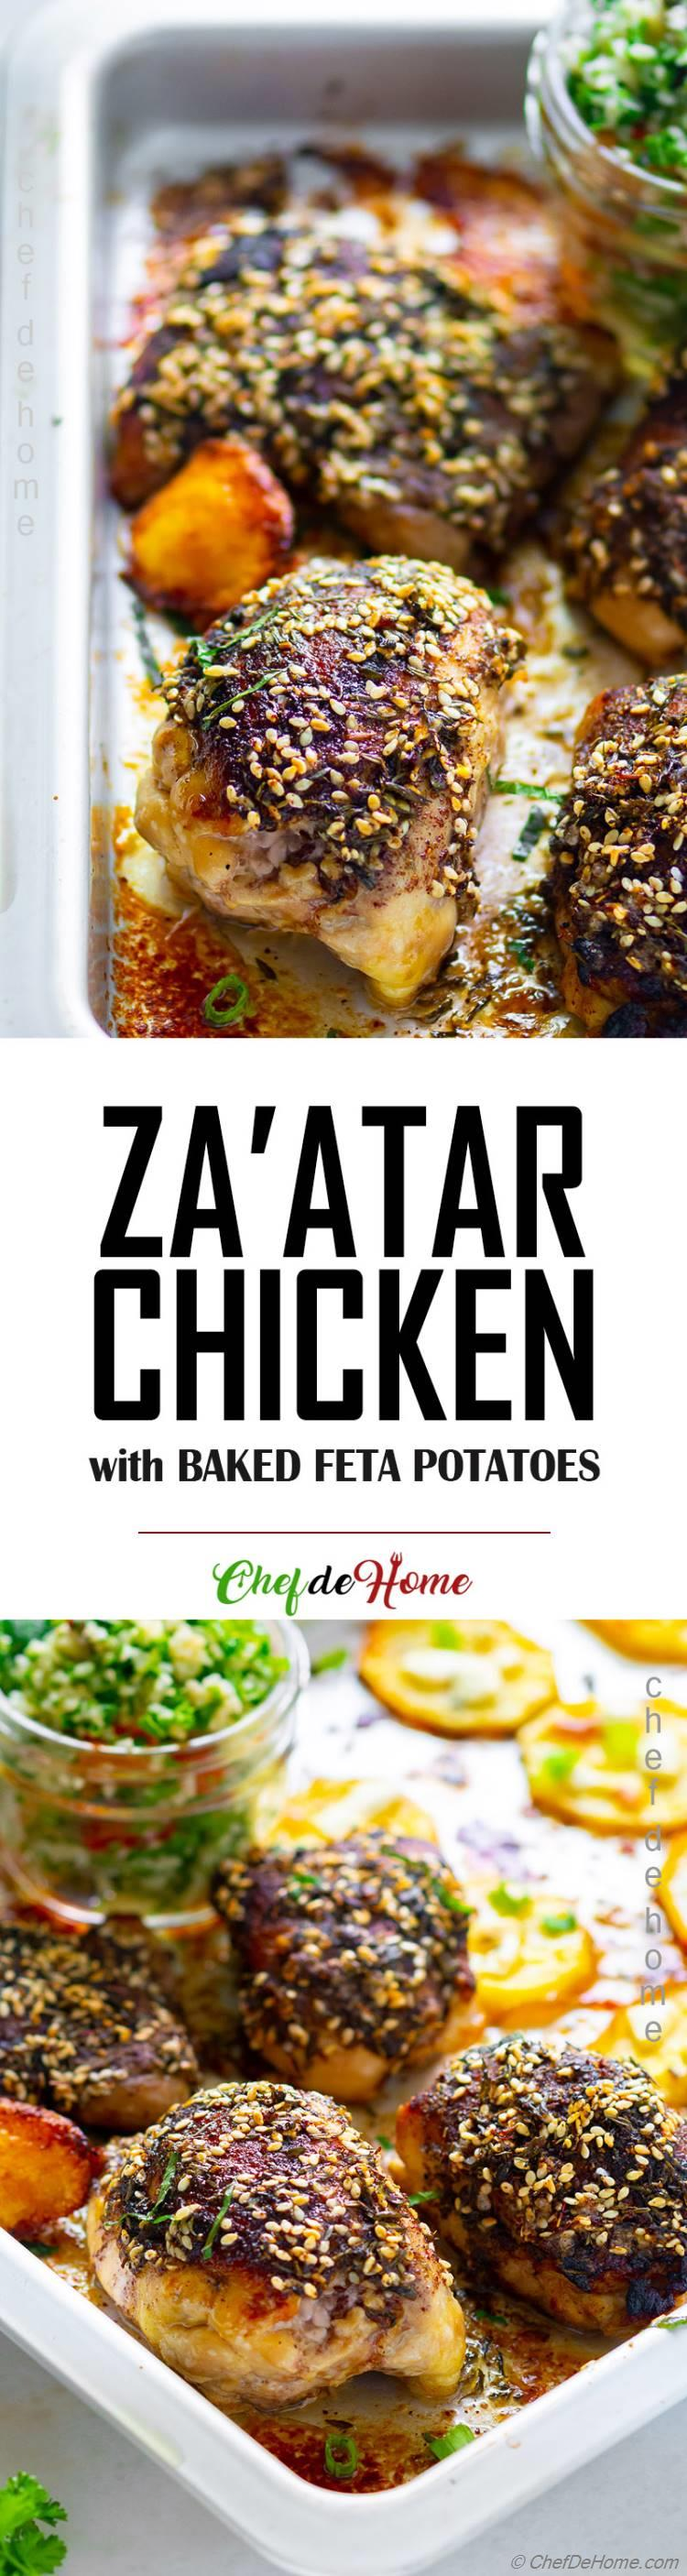 Roasted Zaatar Chicken thighs with Feta Potatoes